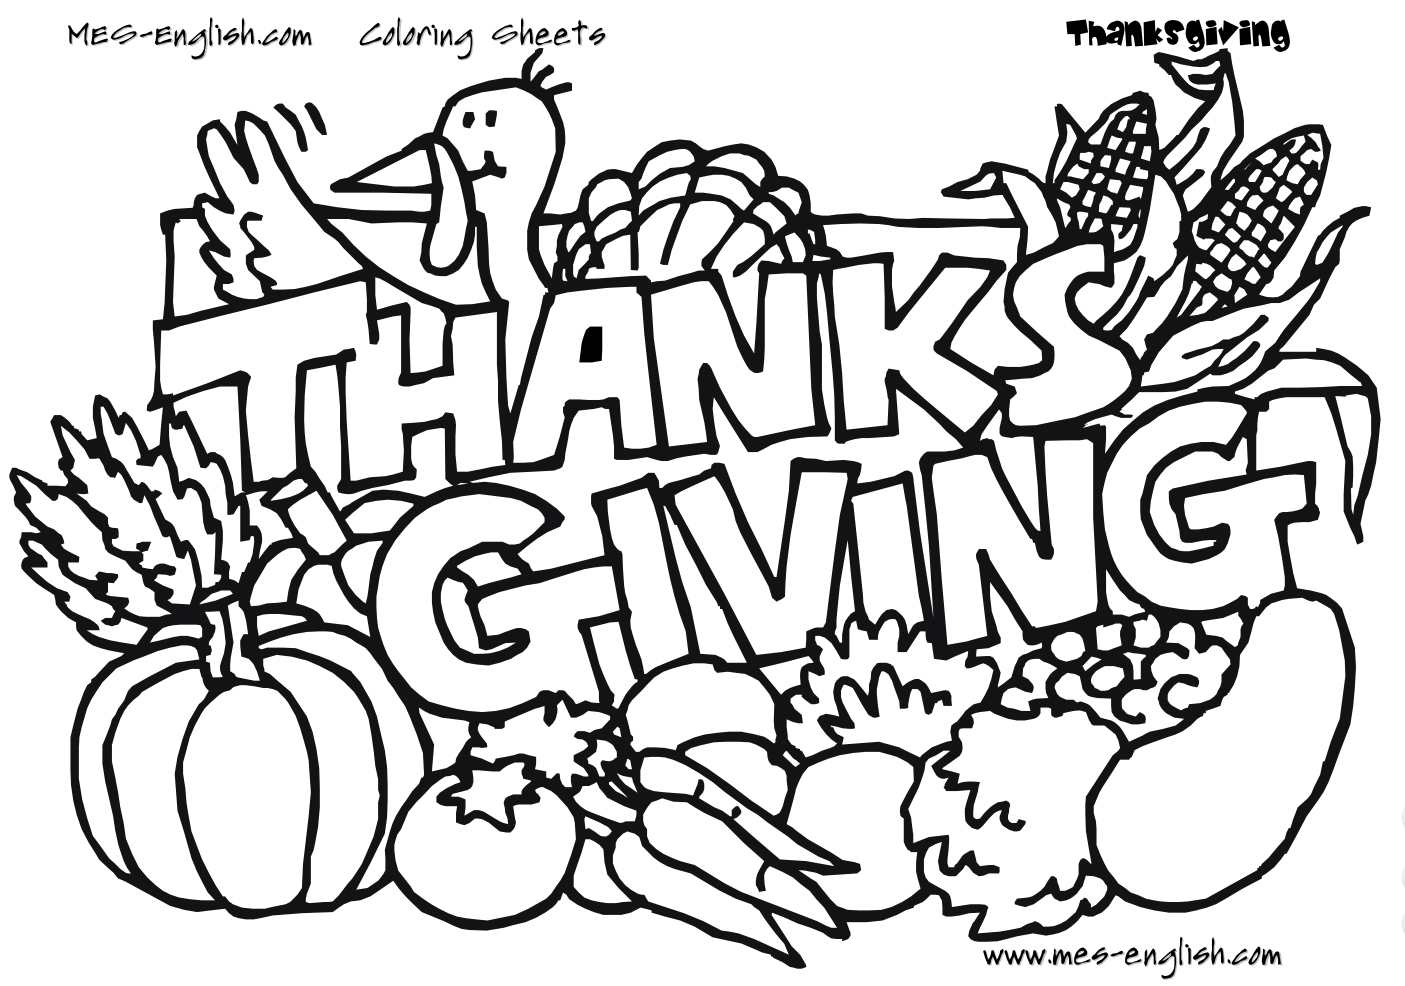 turky coloring pages 4 kids - photo#24